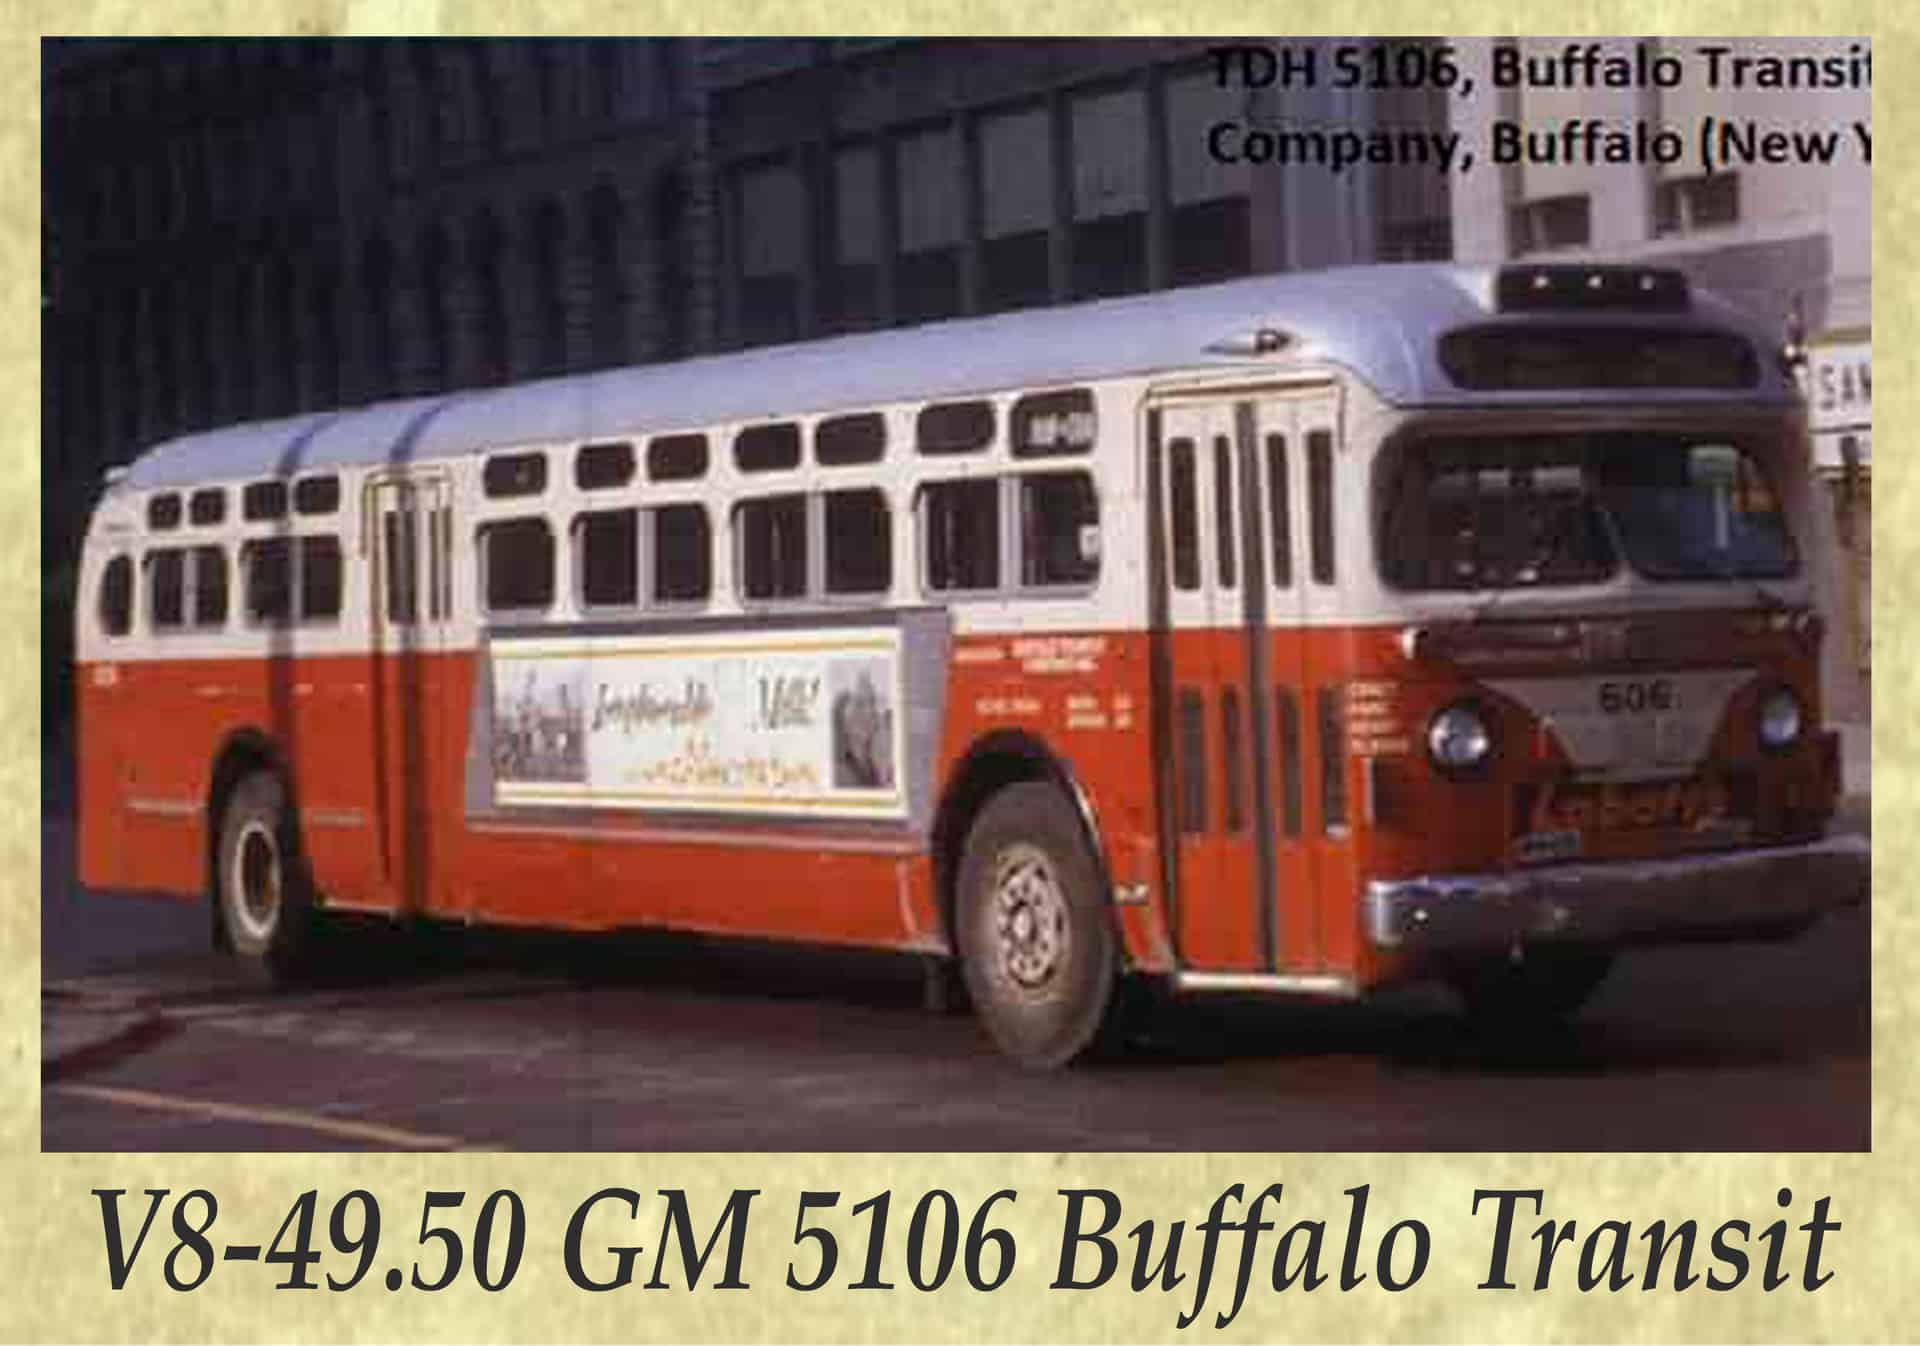 V8-49.50 GM 5106 Buffalo Transit